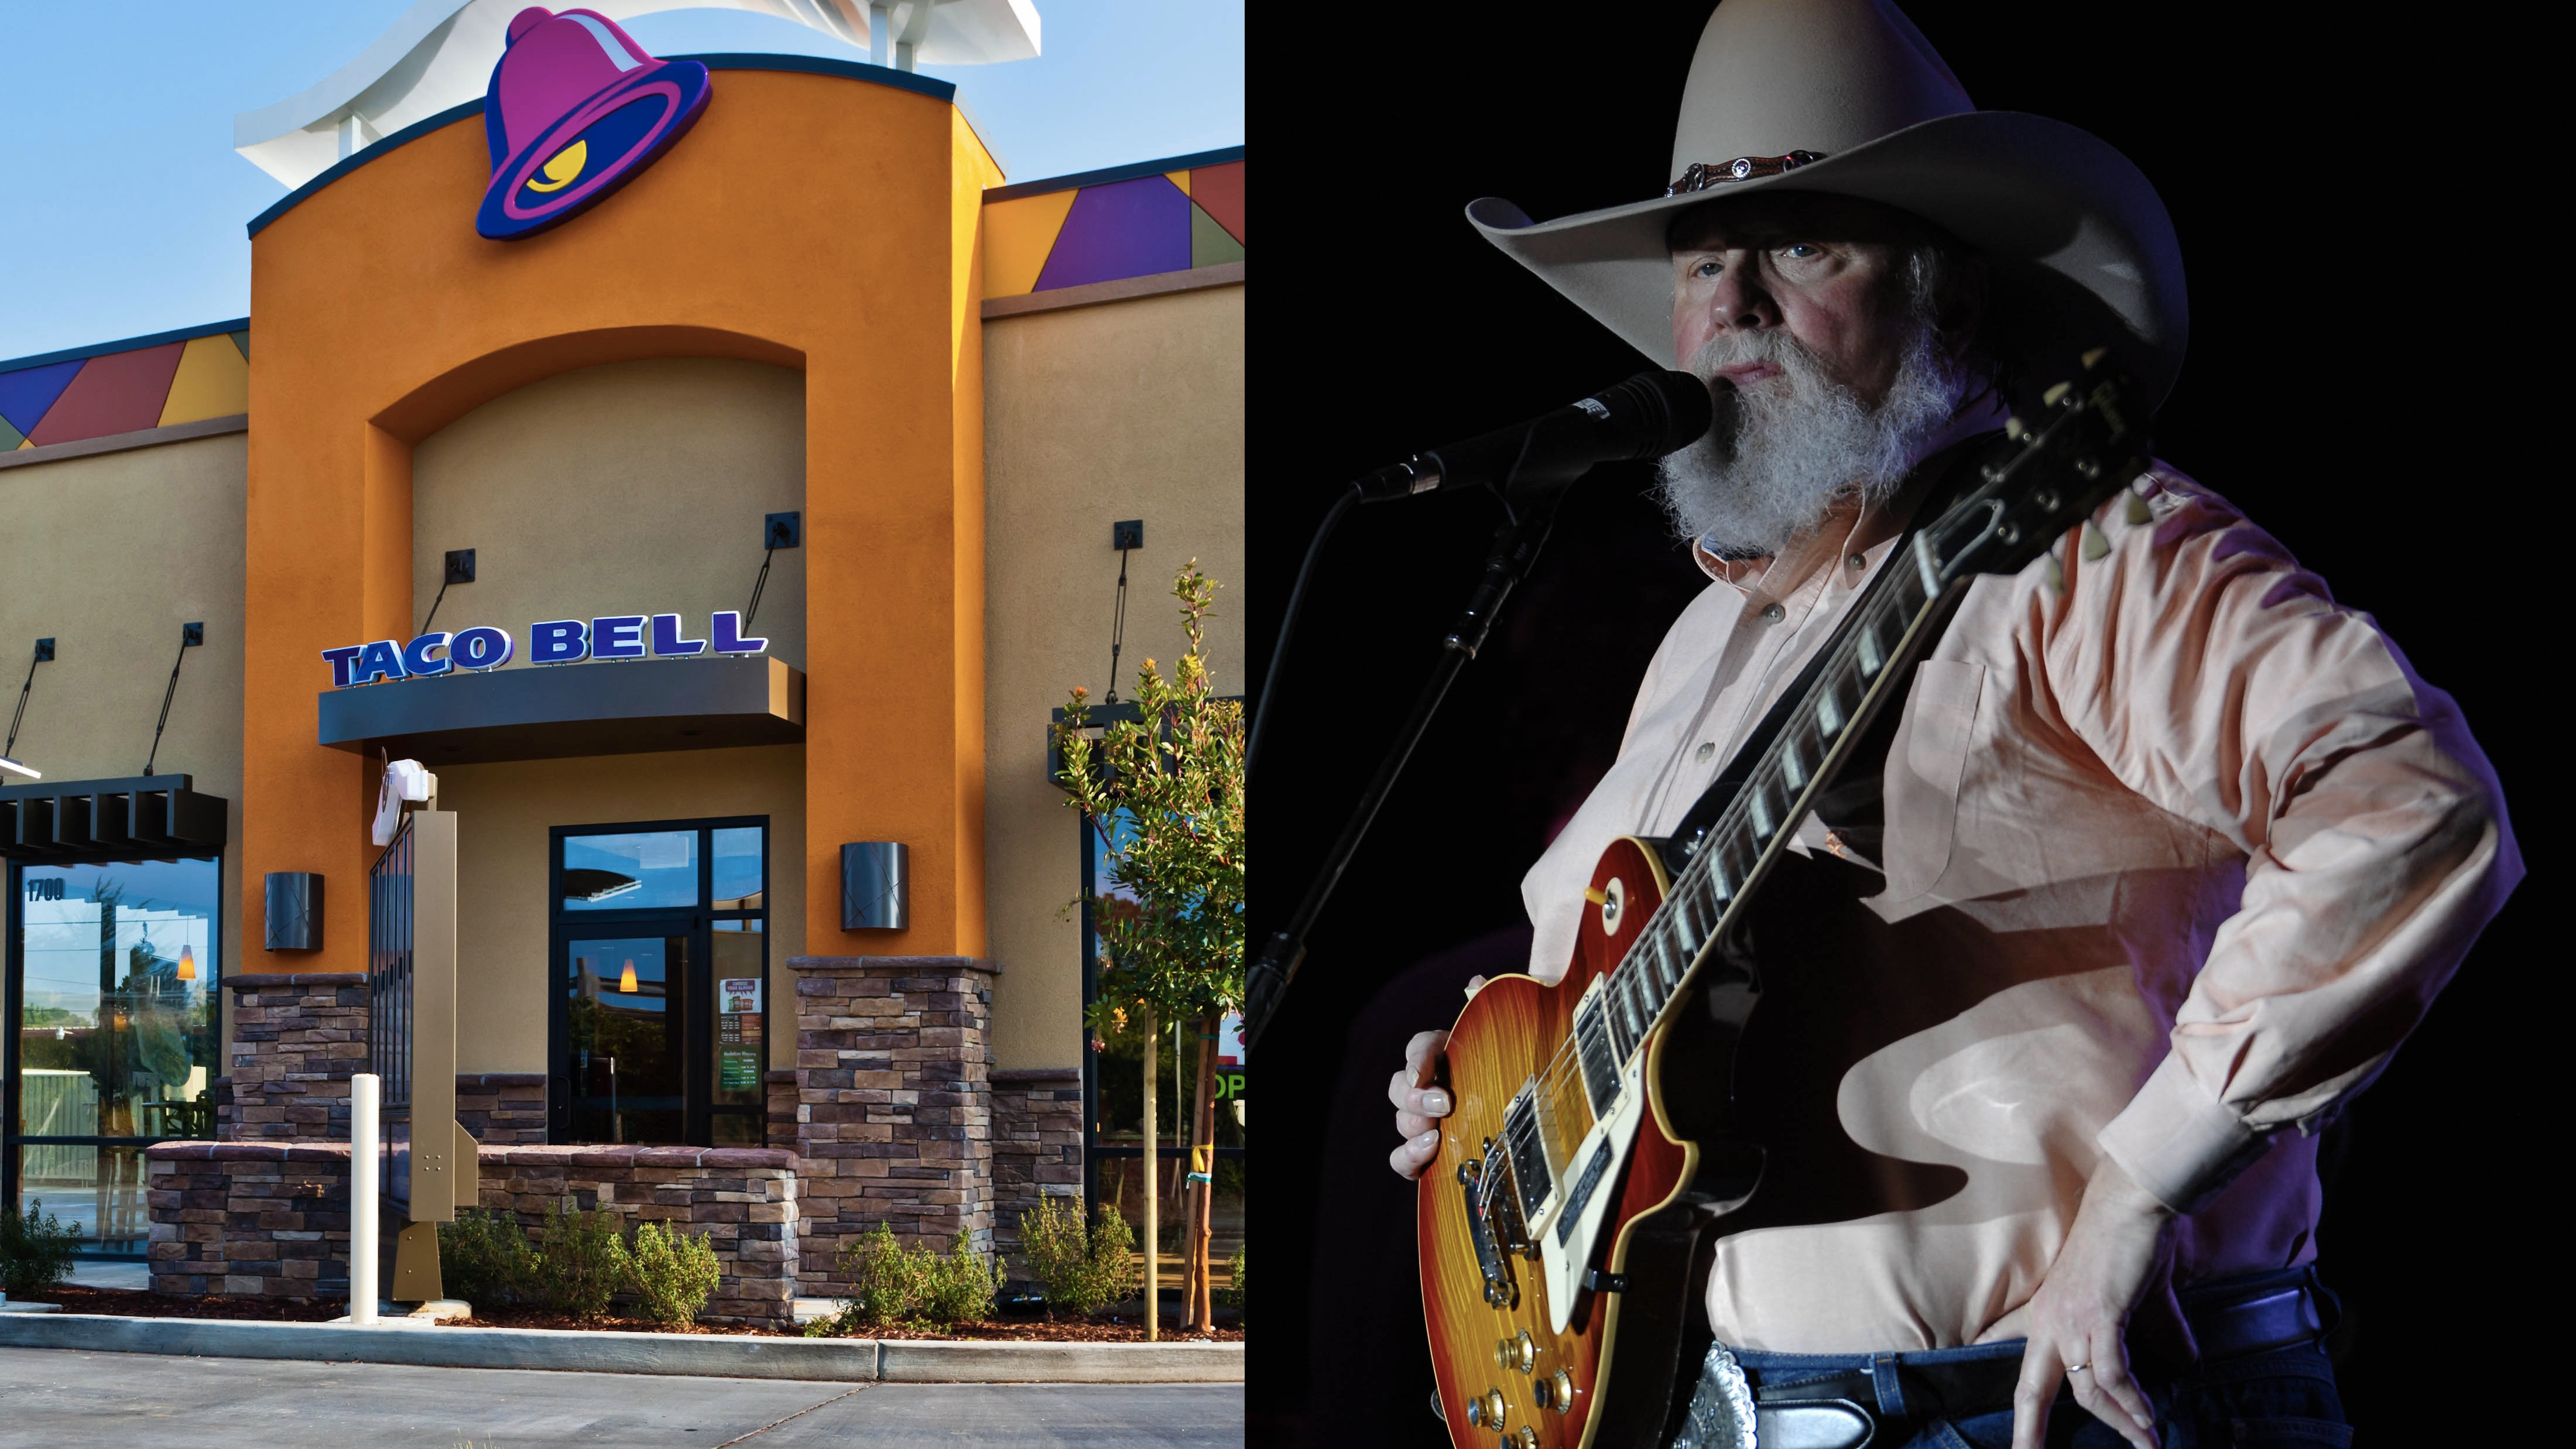 Country Singer Warns Taco Bell Not to Joke About the Illuminati